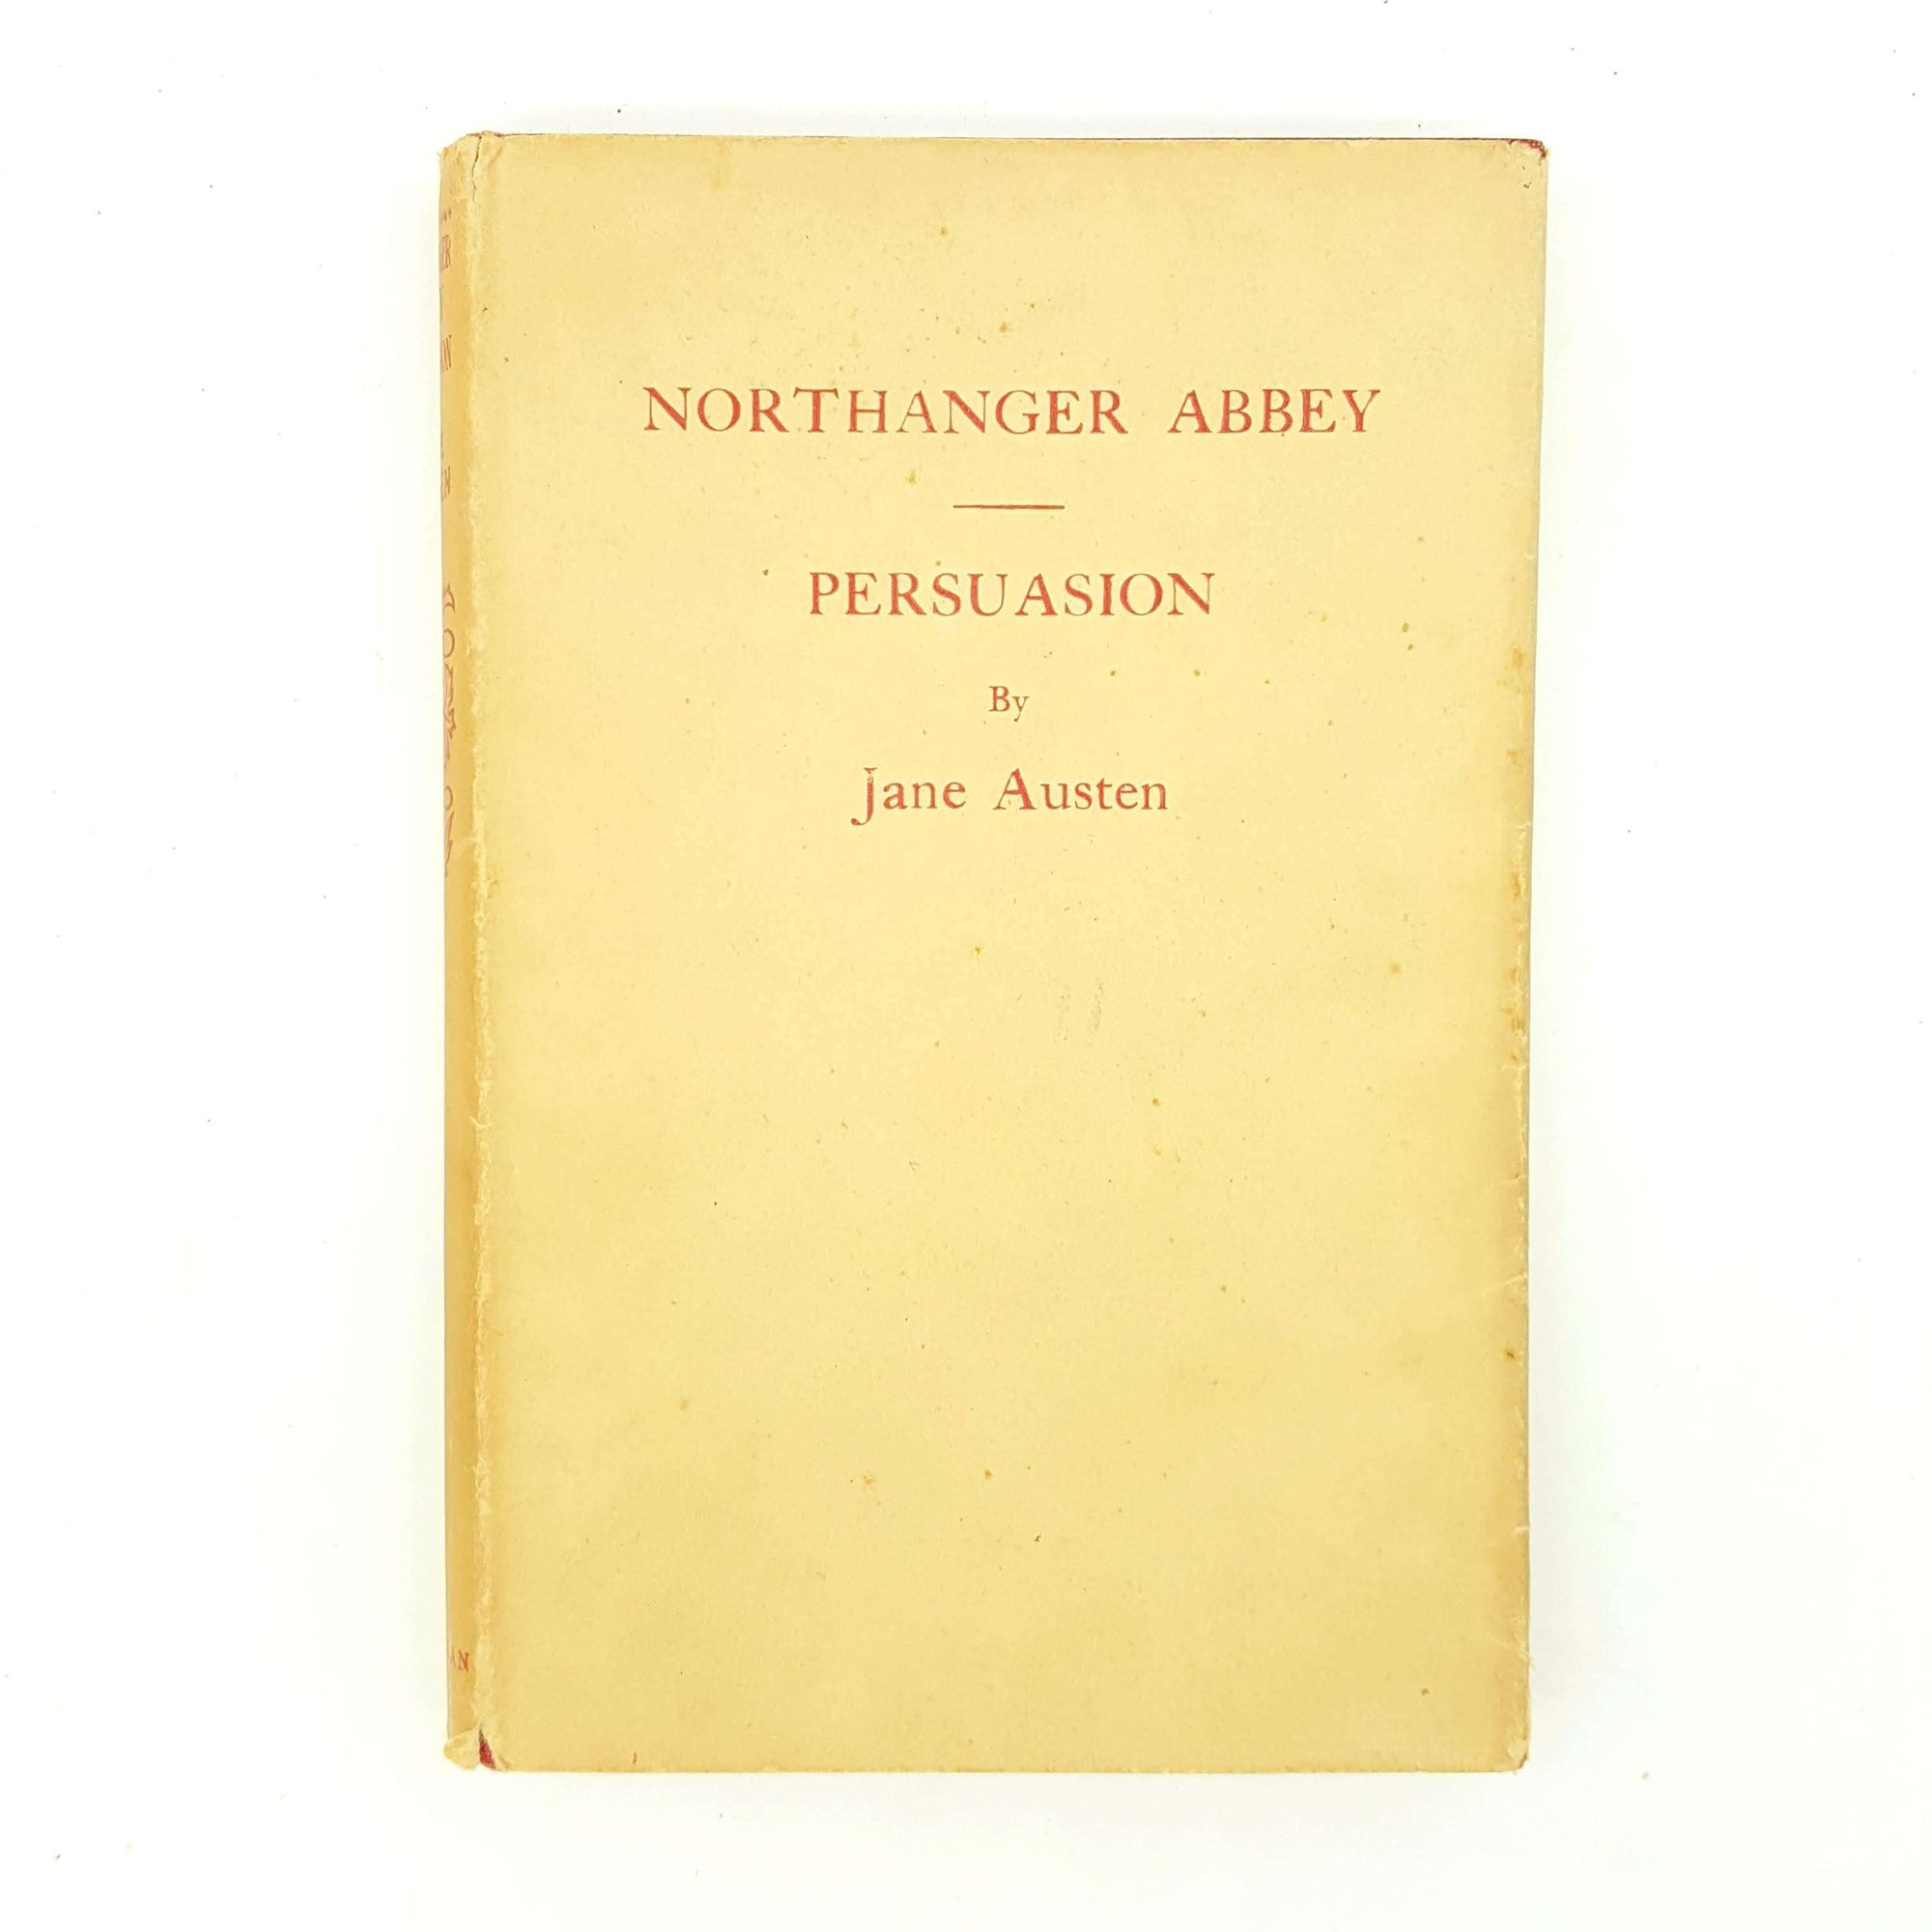 Jane Austen's Northanger Abbey and Persuasion 1951 - Macmillan Country House Library